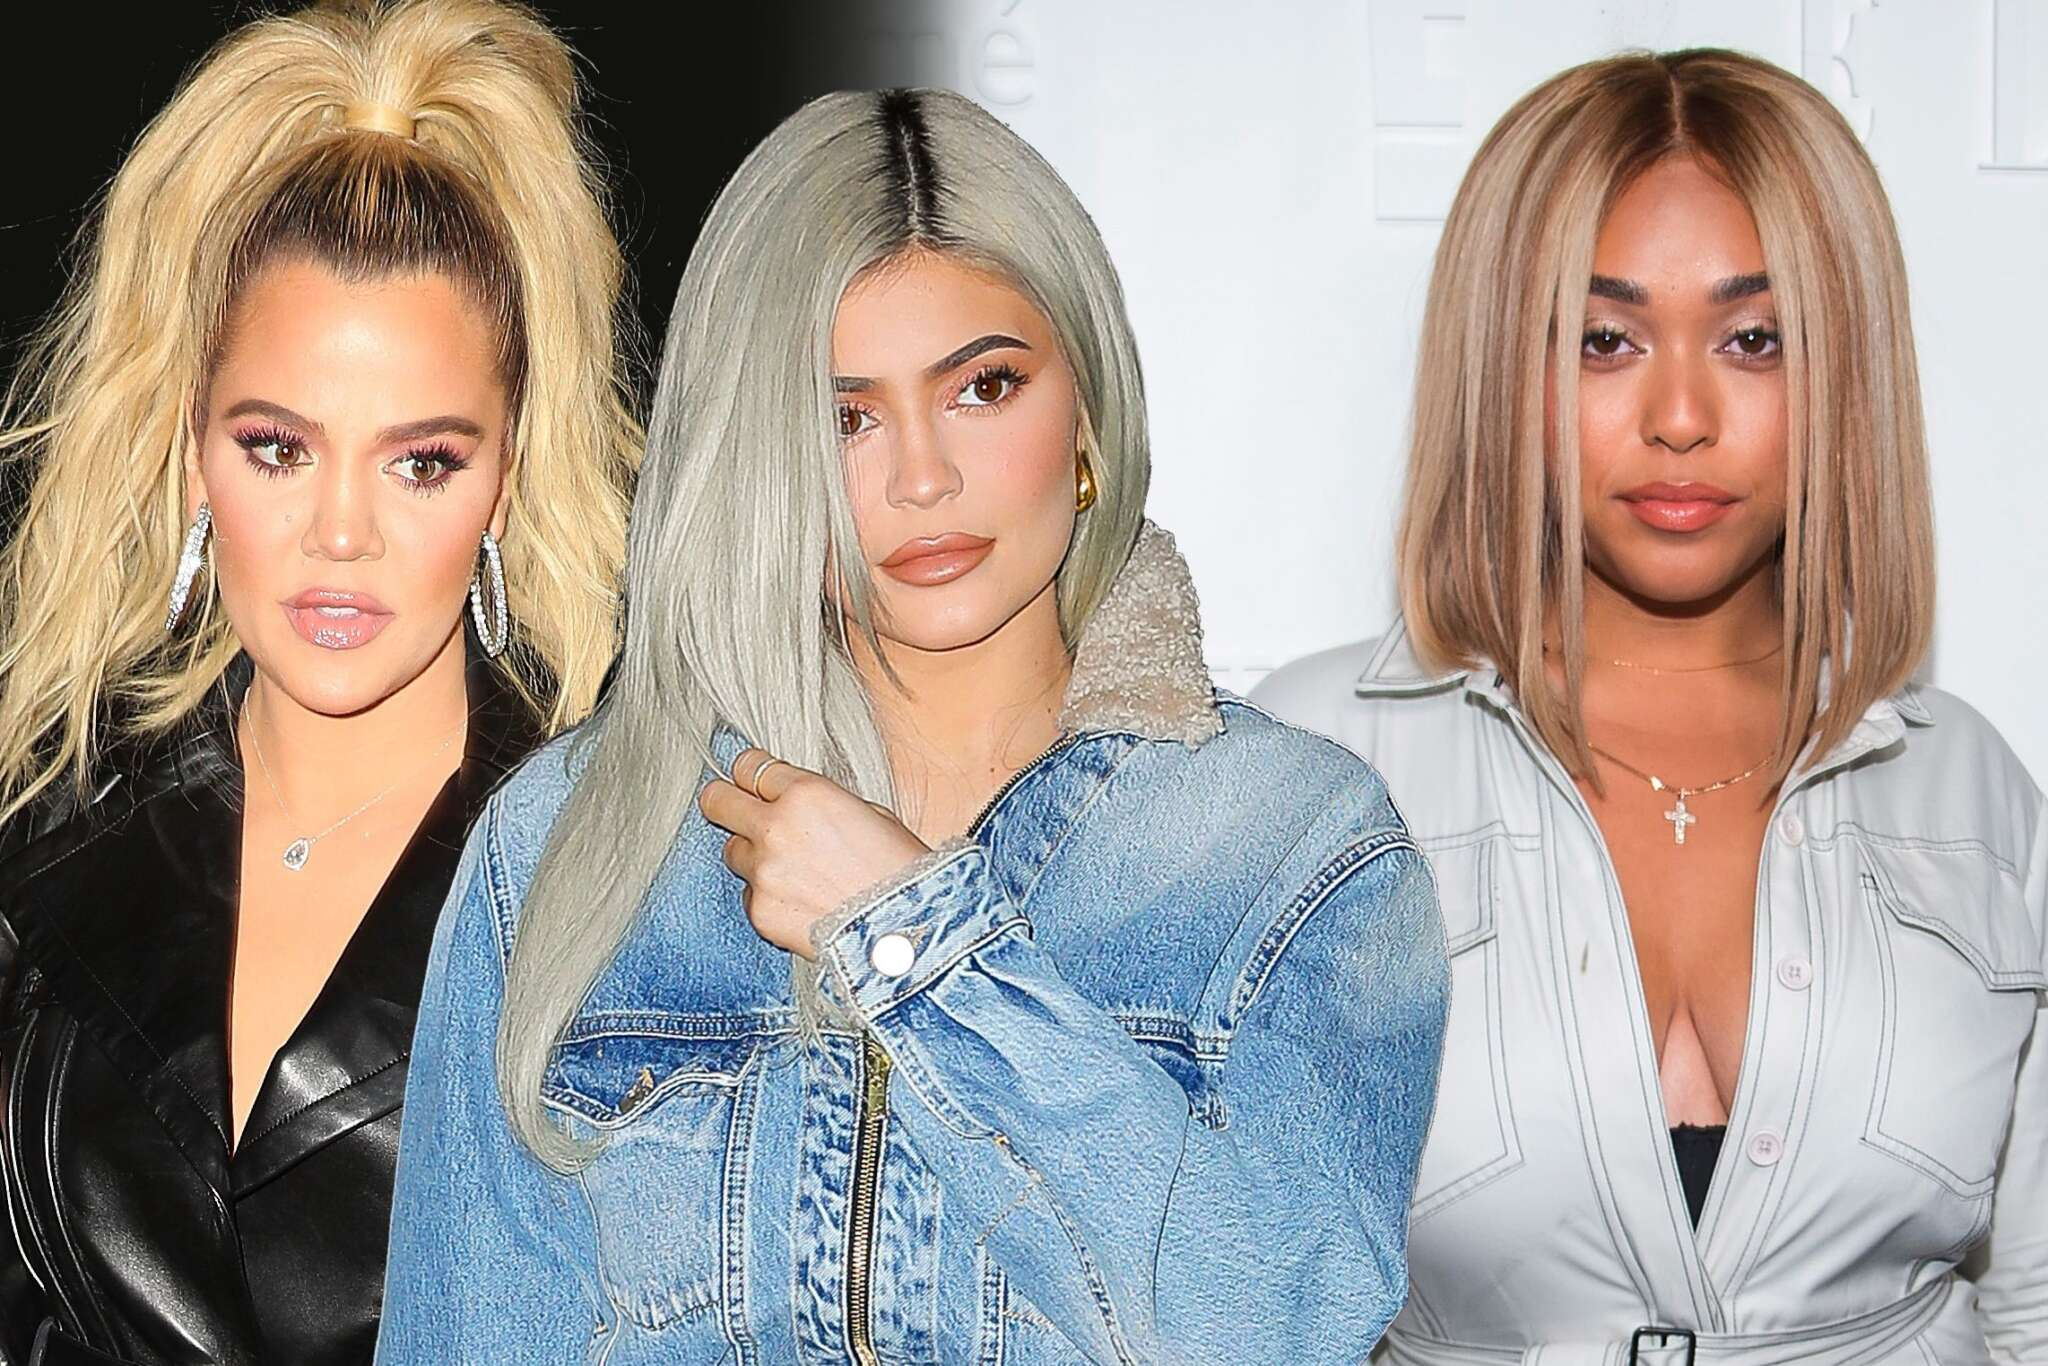 kuwtk-khloe-kardashian-responds-to-accusations-she-wont-allow-sister-kylie-jenner-to-be-friends-with-jordyn-woods-again